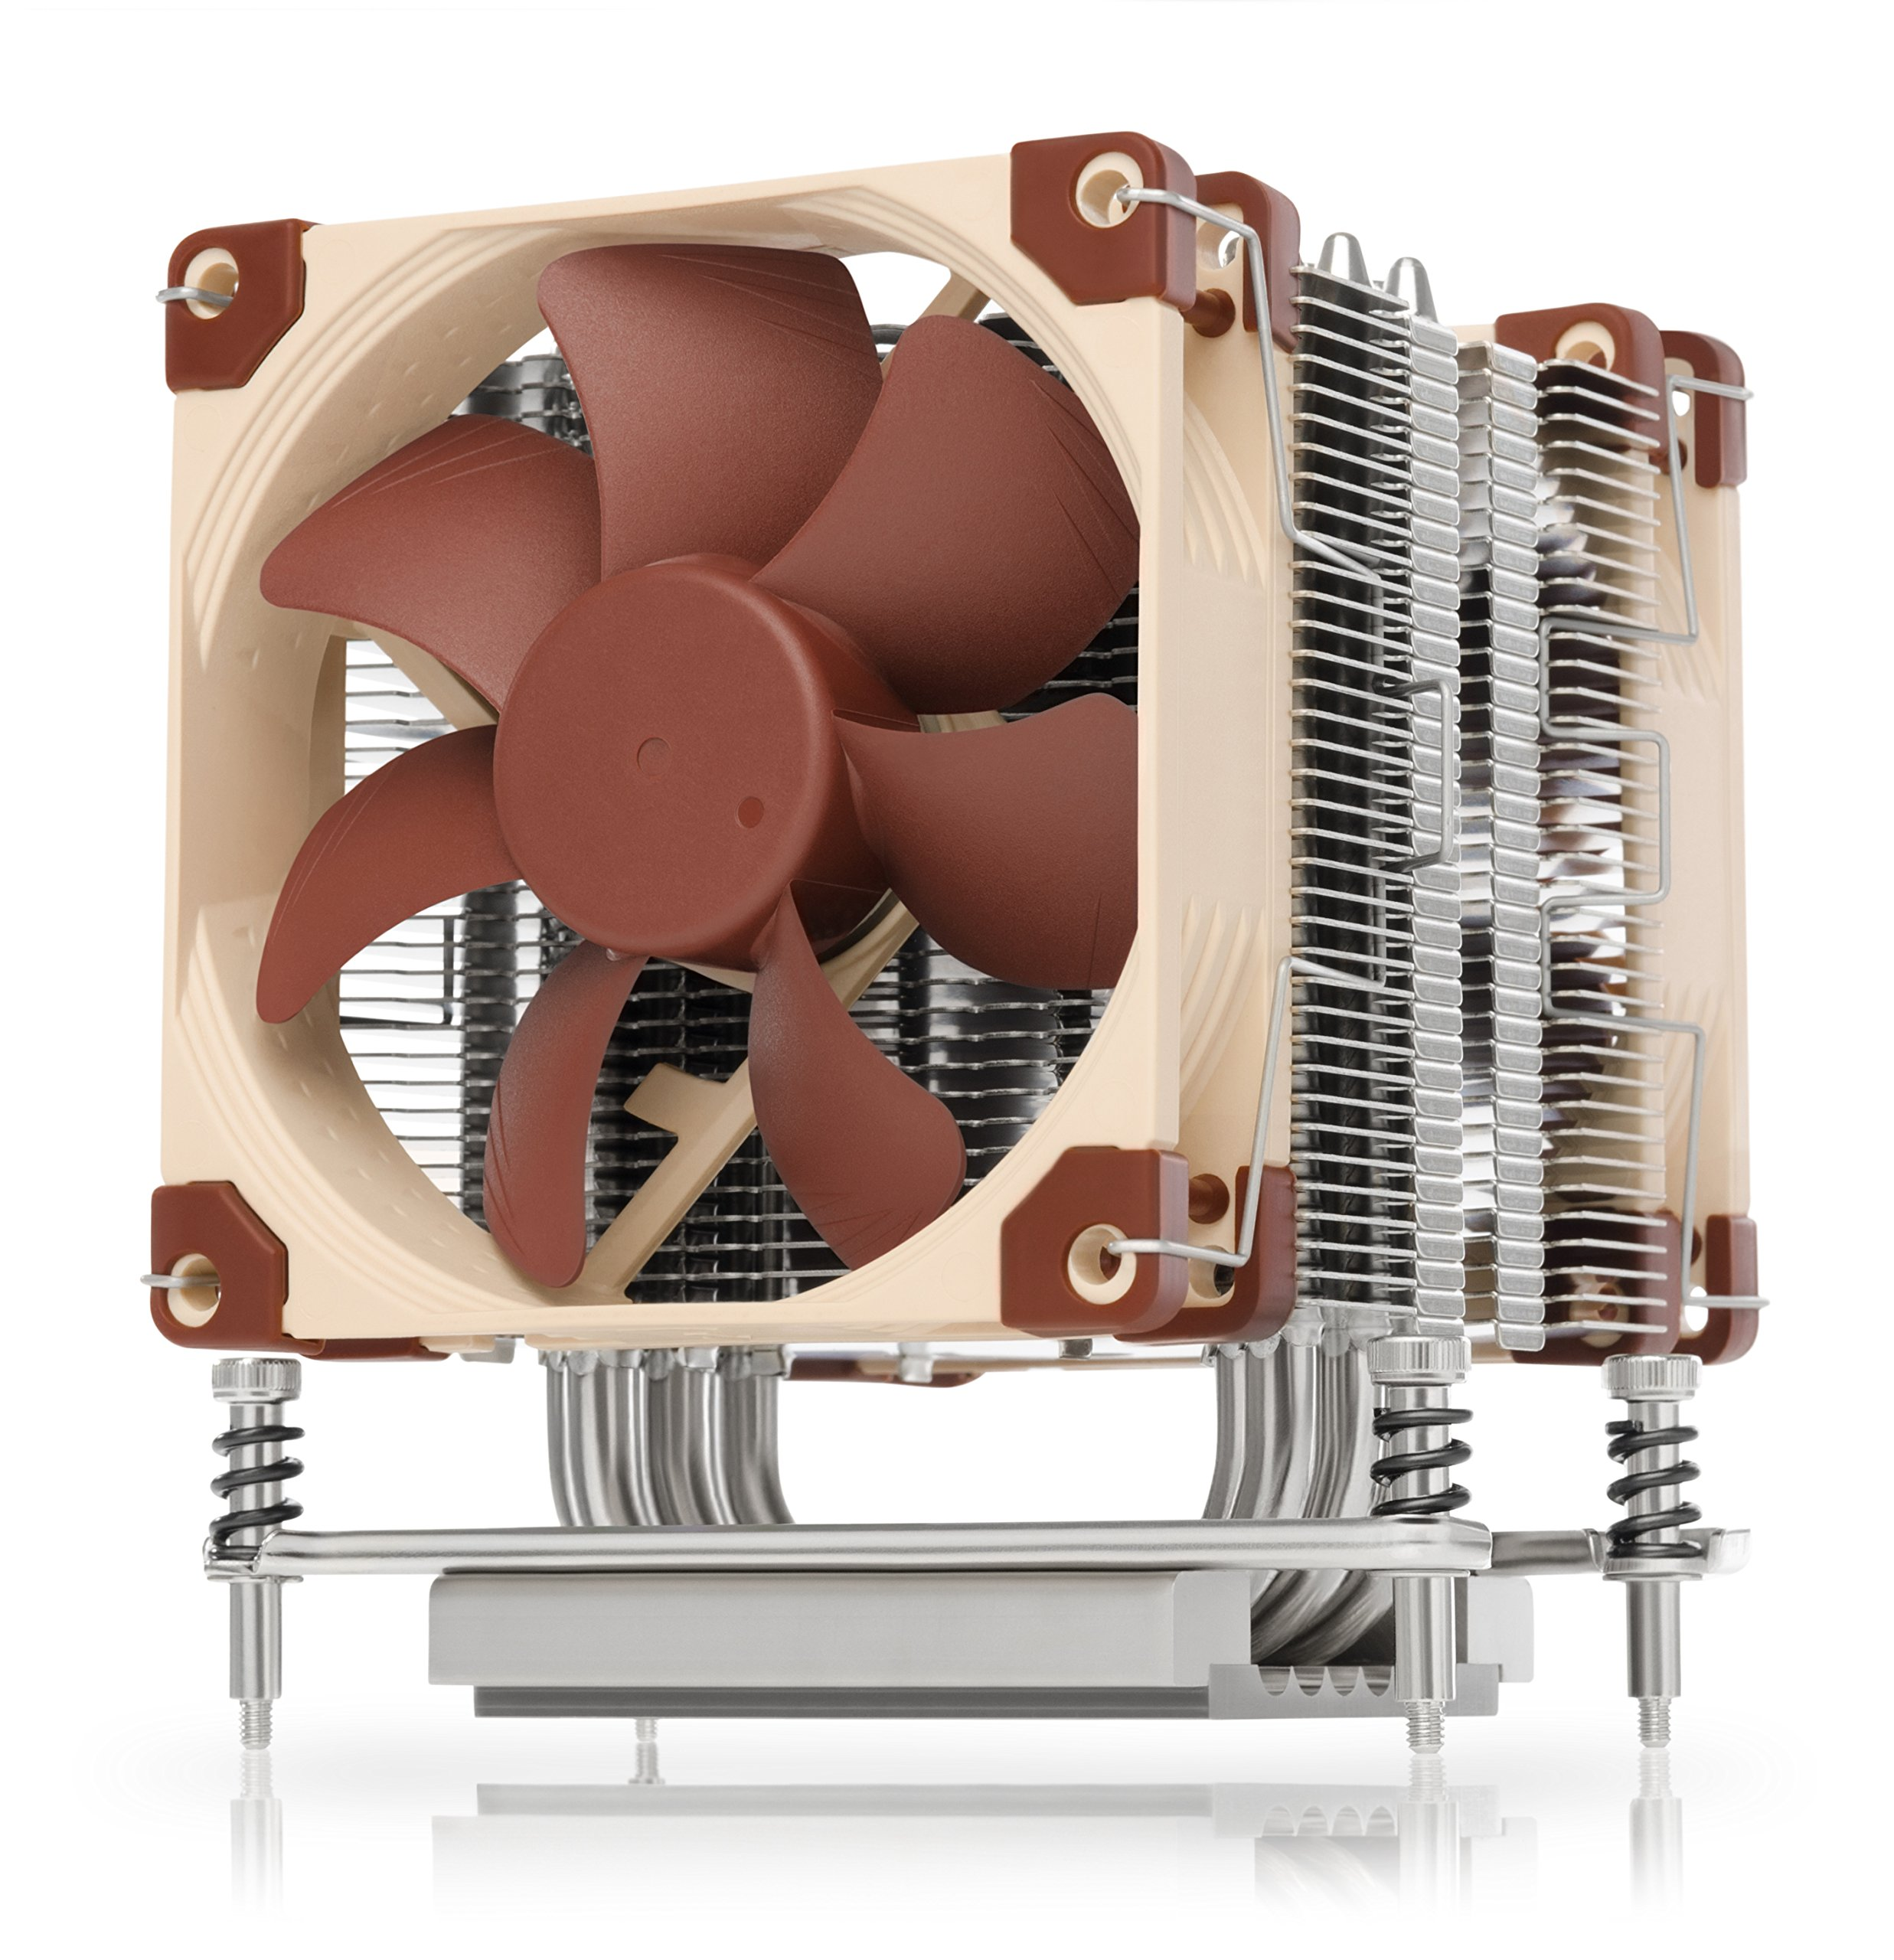 Cpu Cooler Noctua Nh-u9 Tr4-sp3 Premium-grade 92mm Cpu Coole